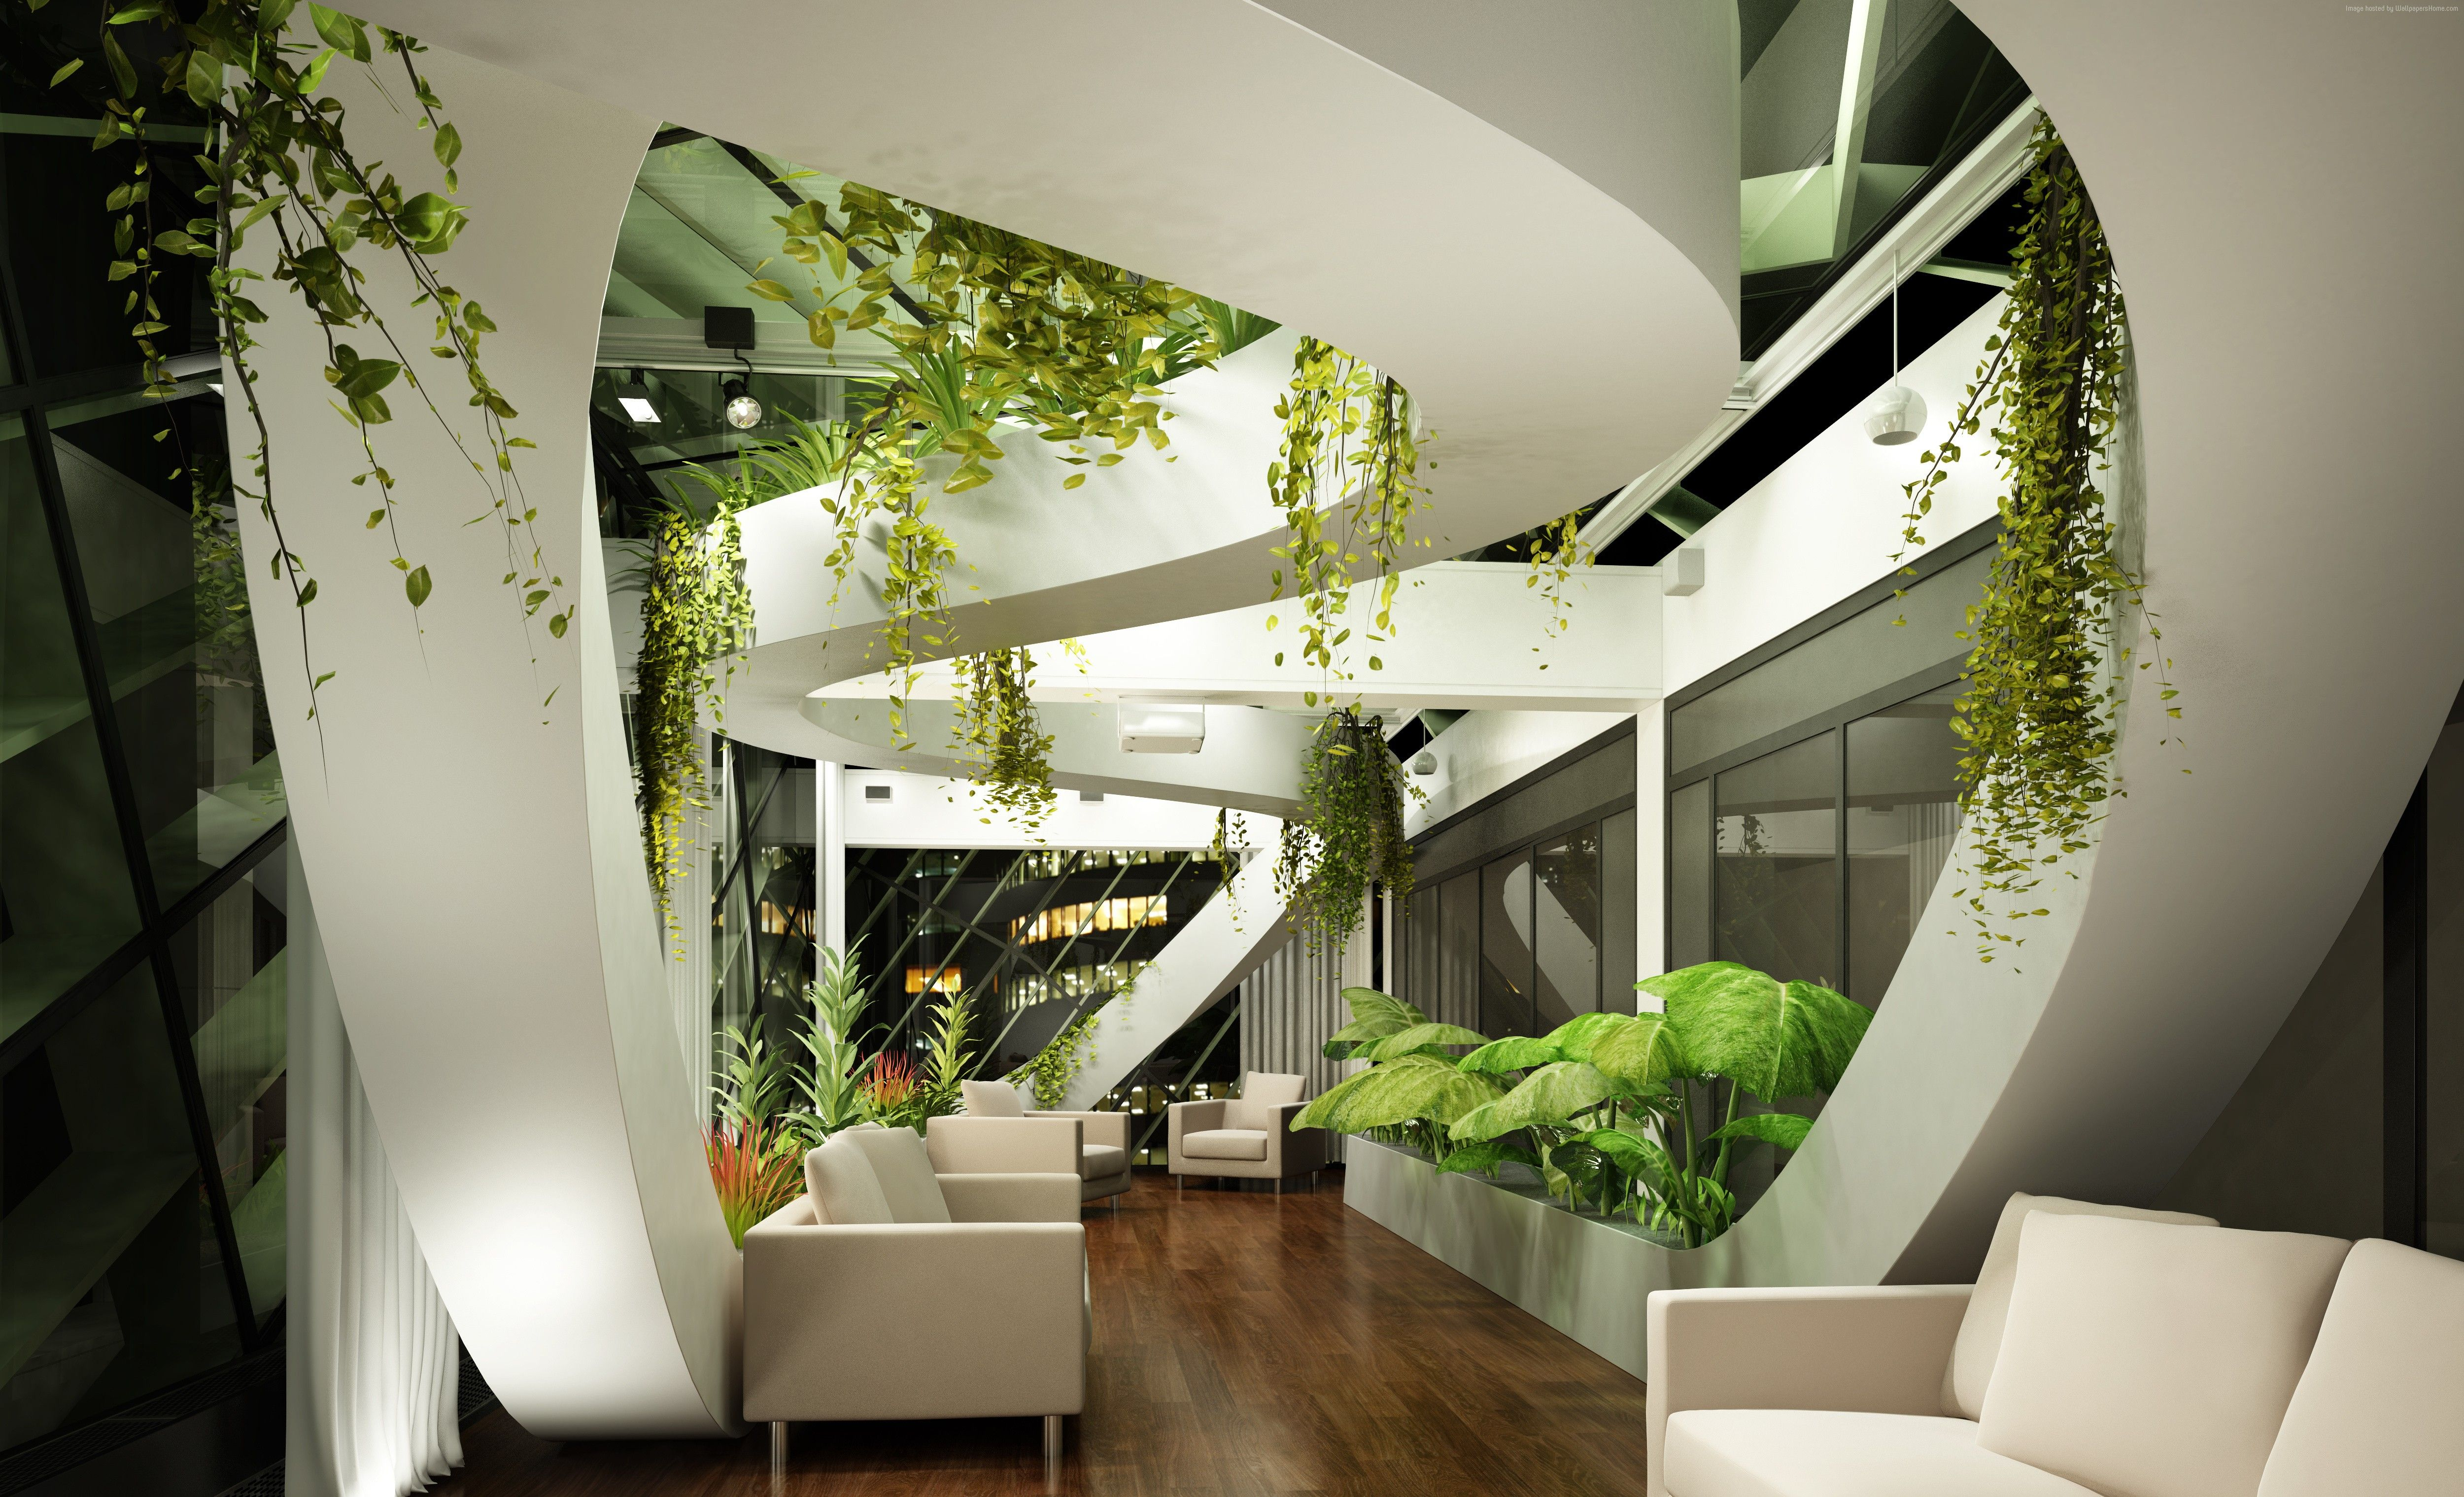 rules spirit interior area plants architects as with a sitting of part blog in room natural living the